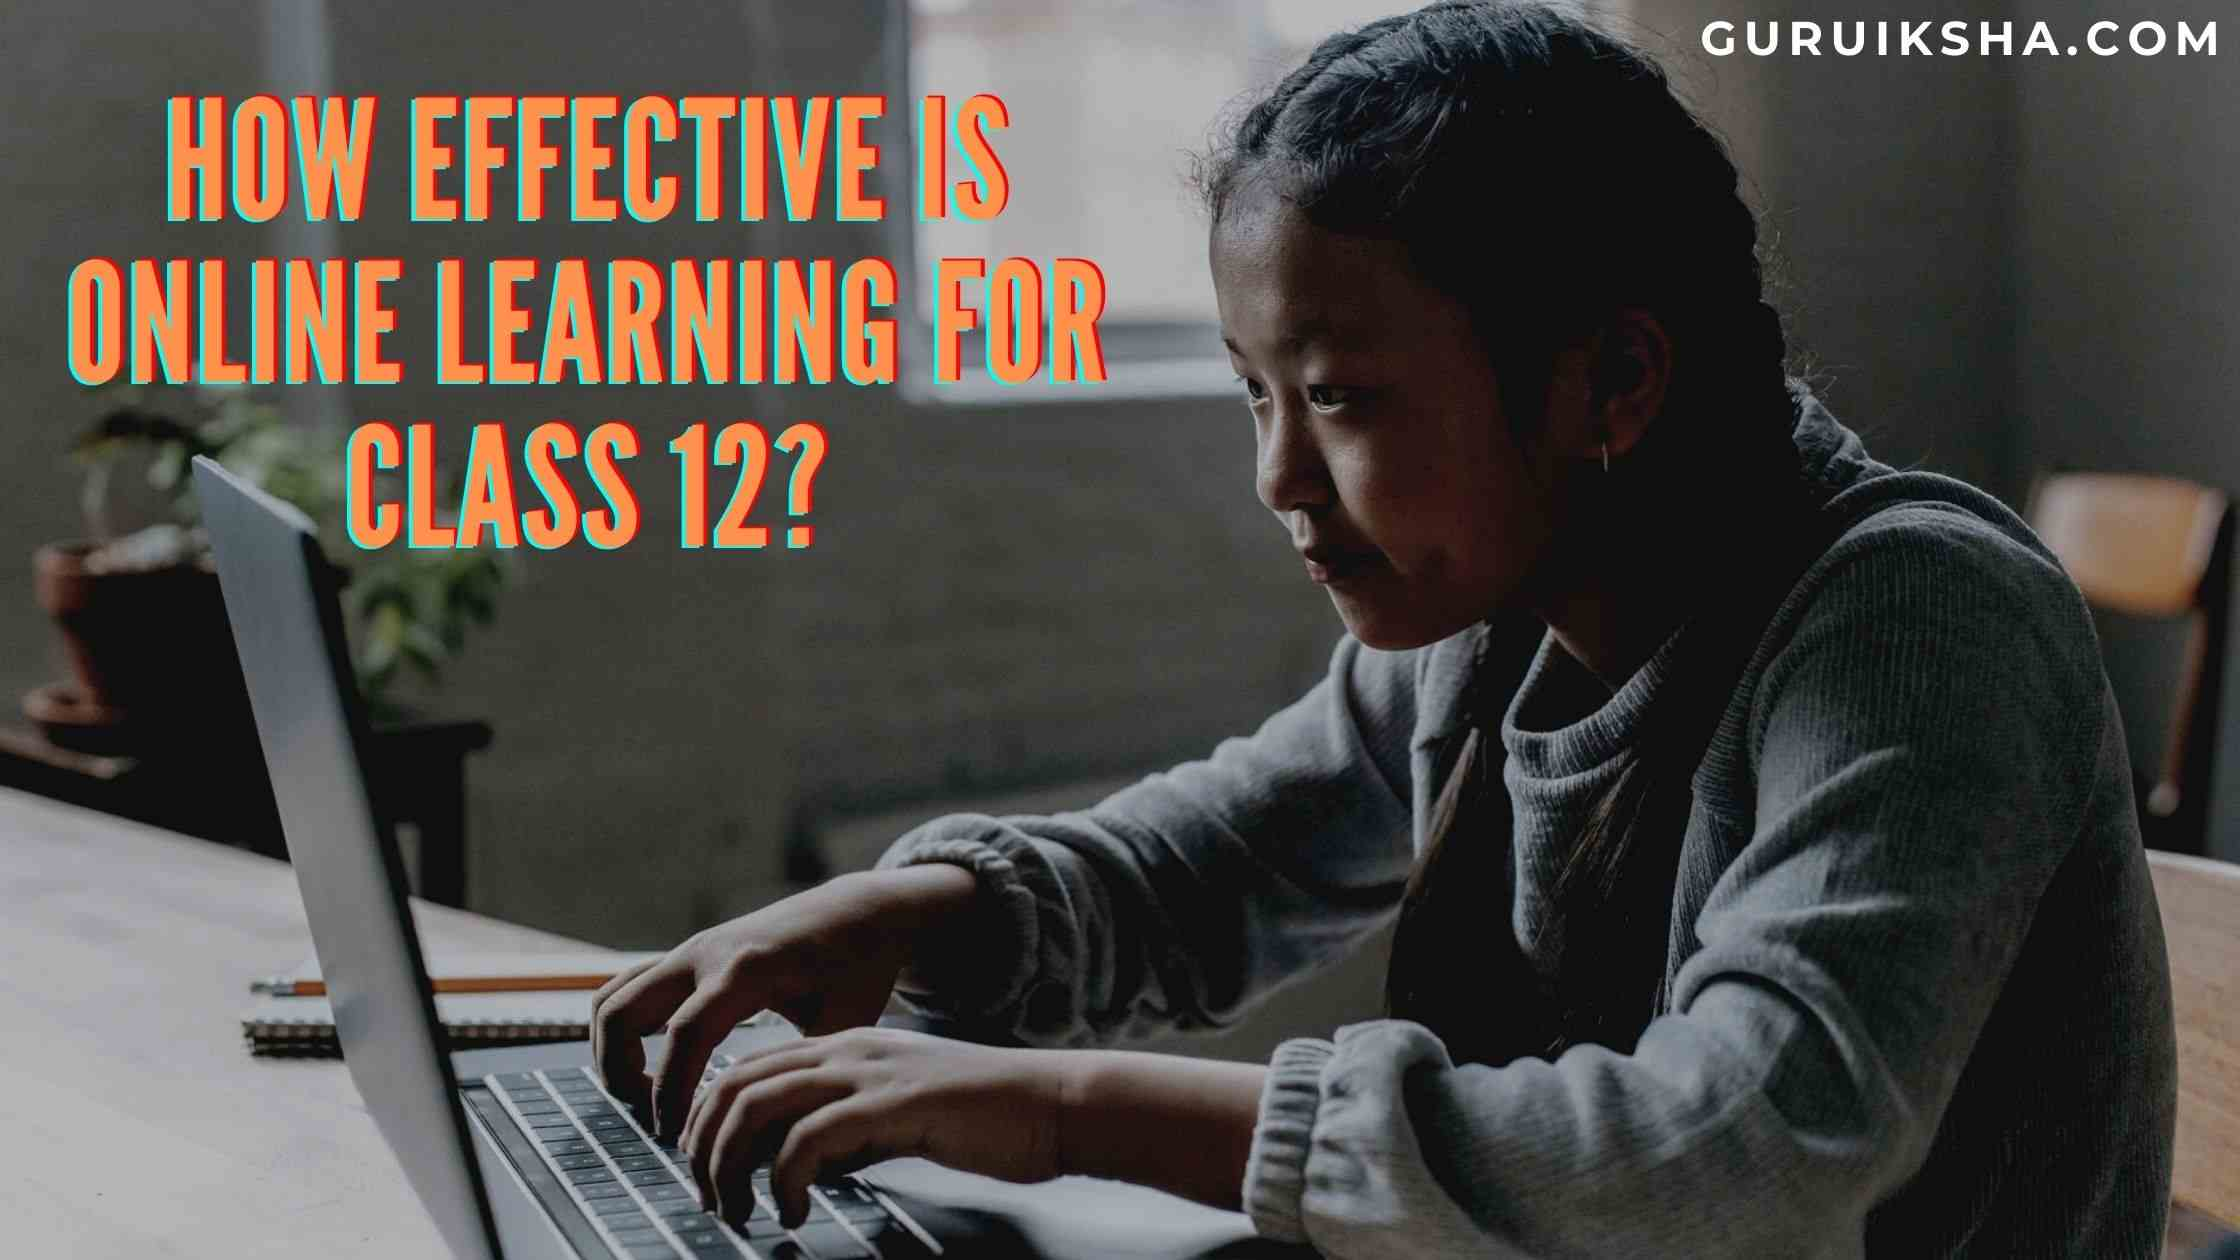 How Effective Is Online Learning For Class 12?